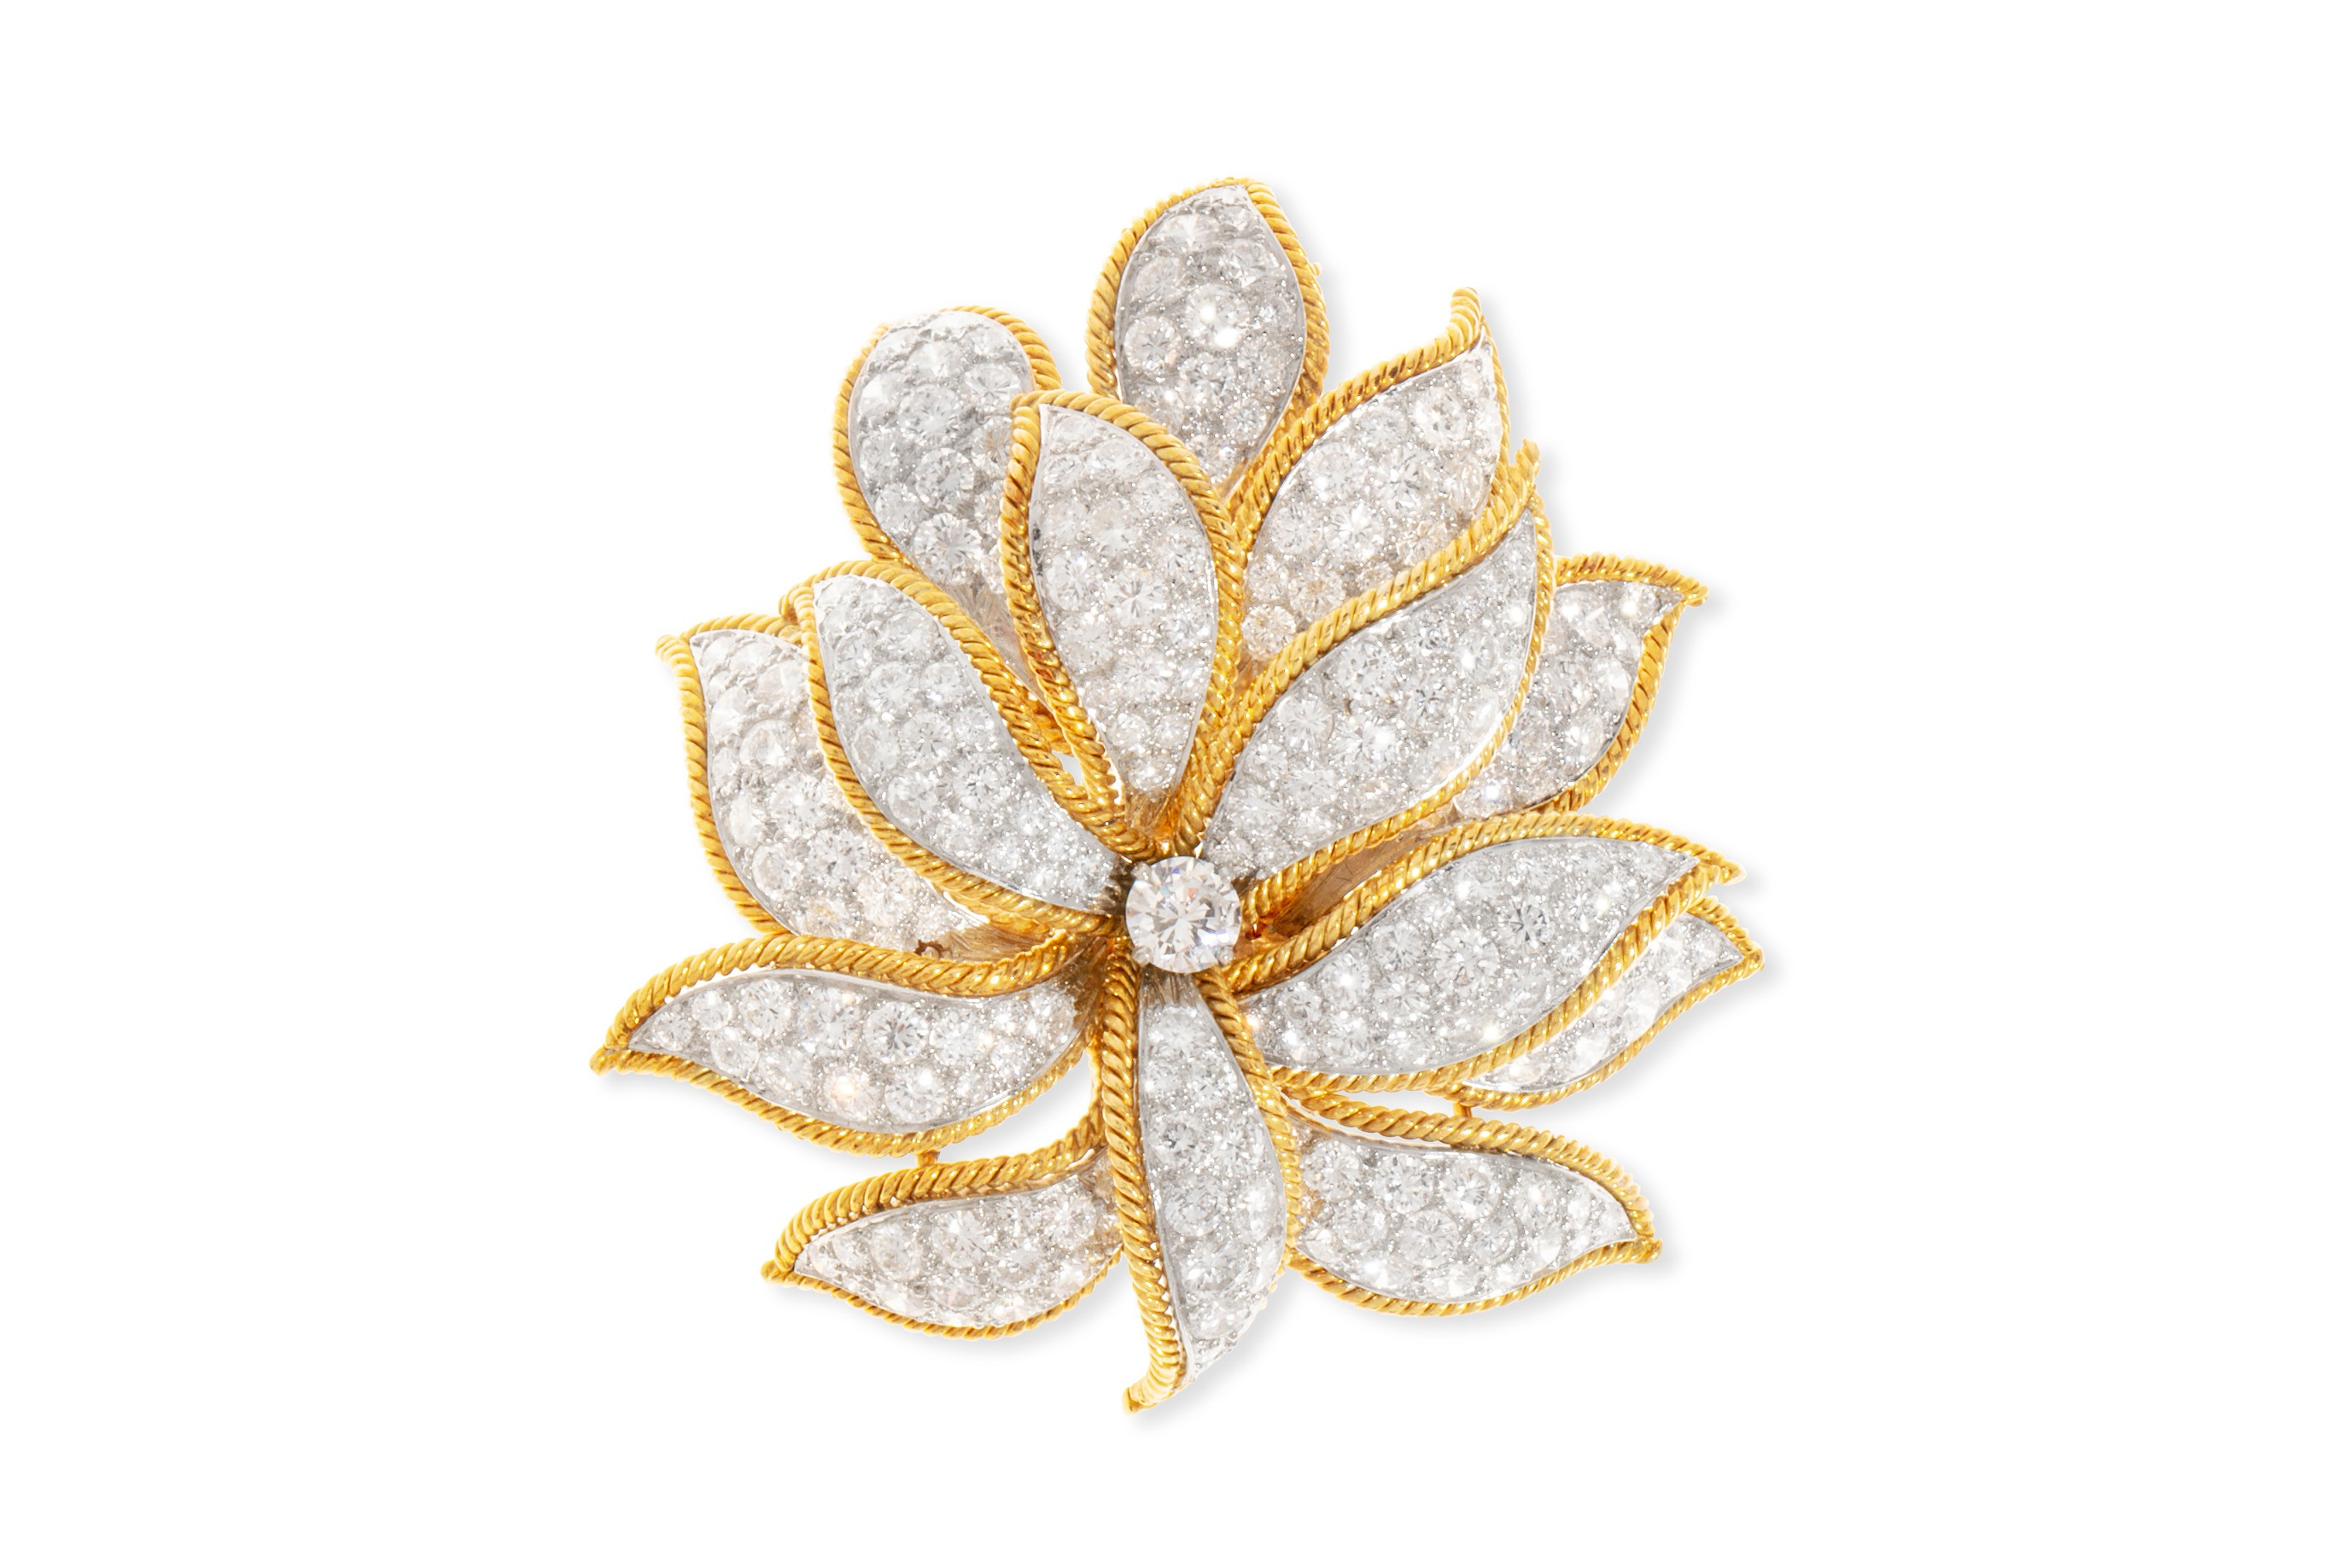 Fine jewelry will be led by pieces from iconic American jeweler David Webb, including a bold diamond and platinum foliate brooch (est. $10,000-15,000).